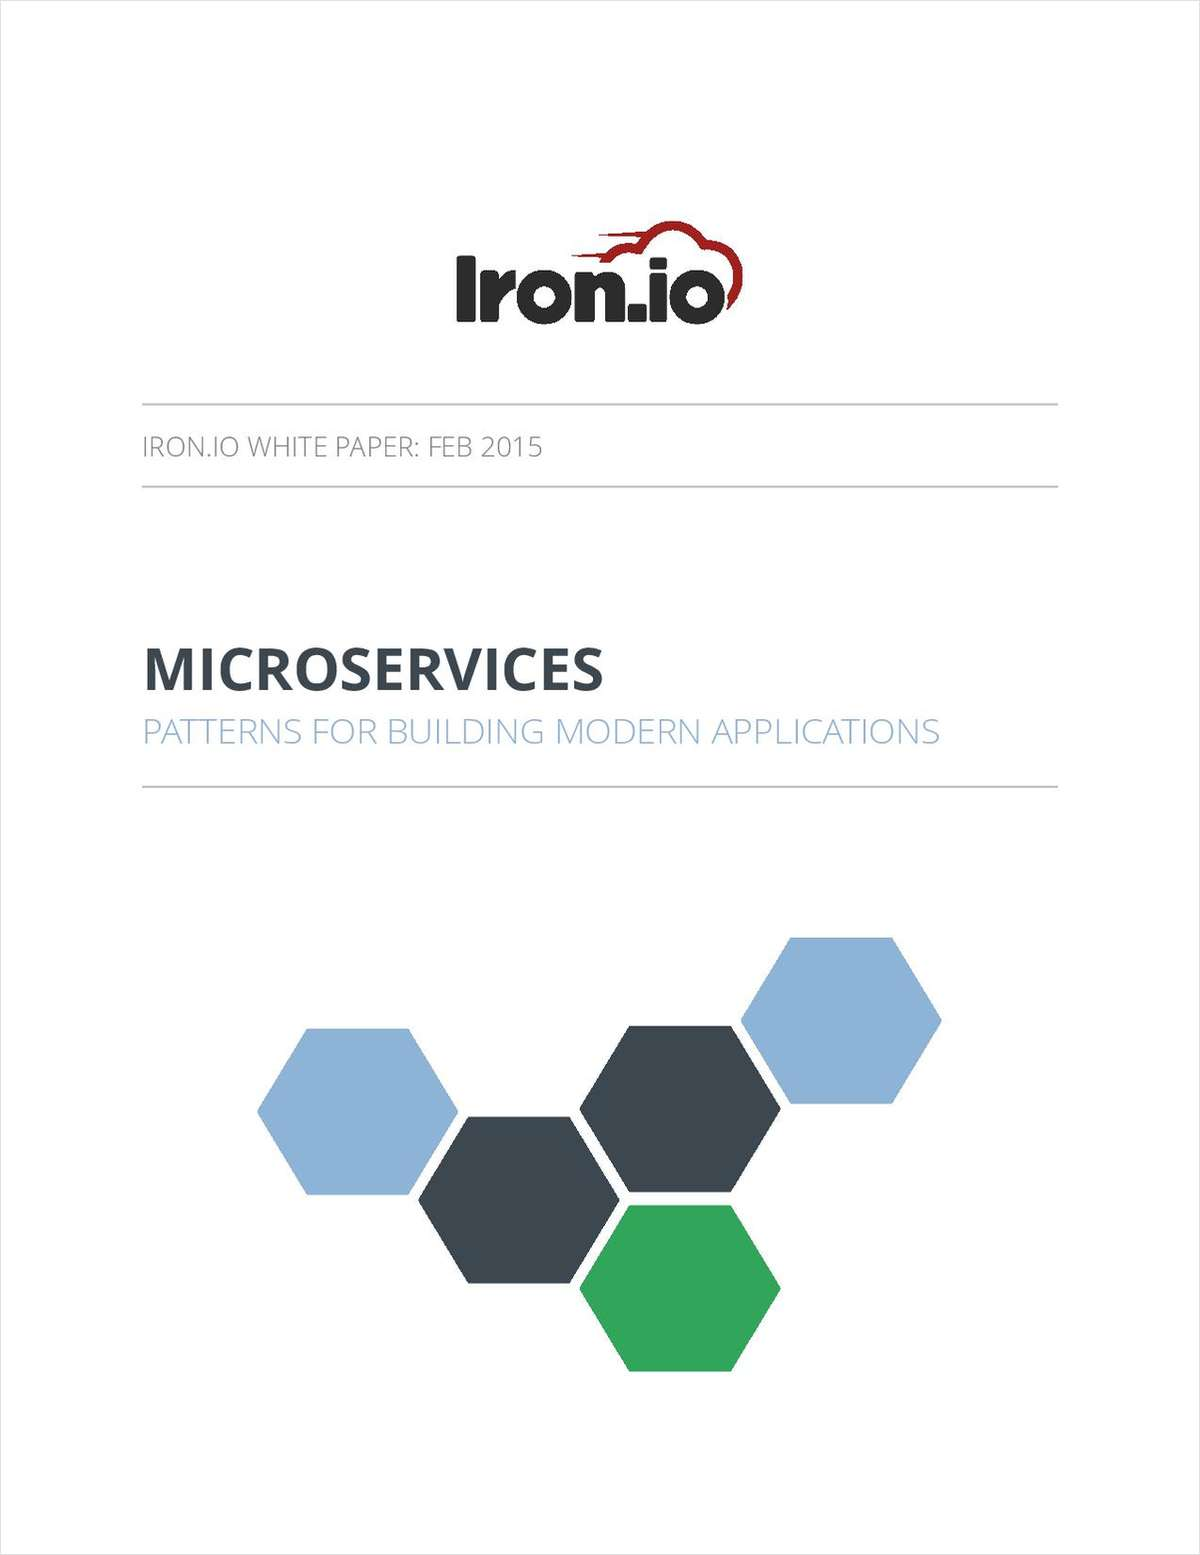 MICROSERVICES: Patterns For Building Modern Applications